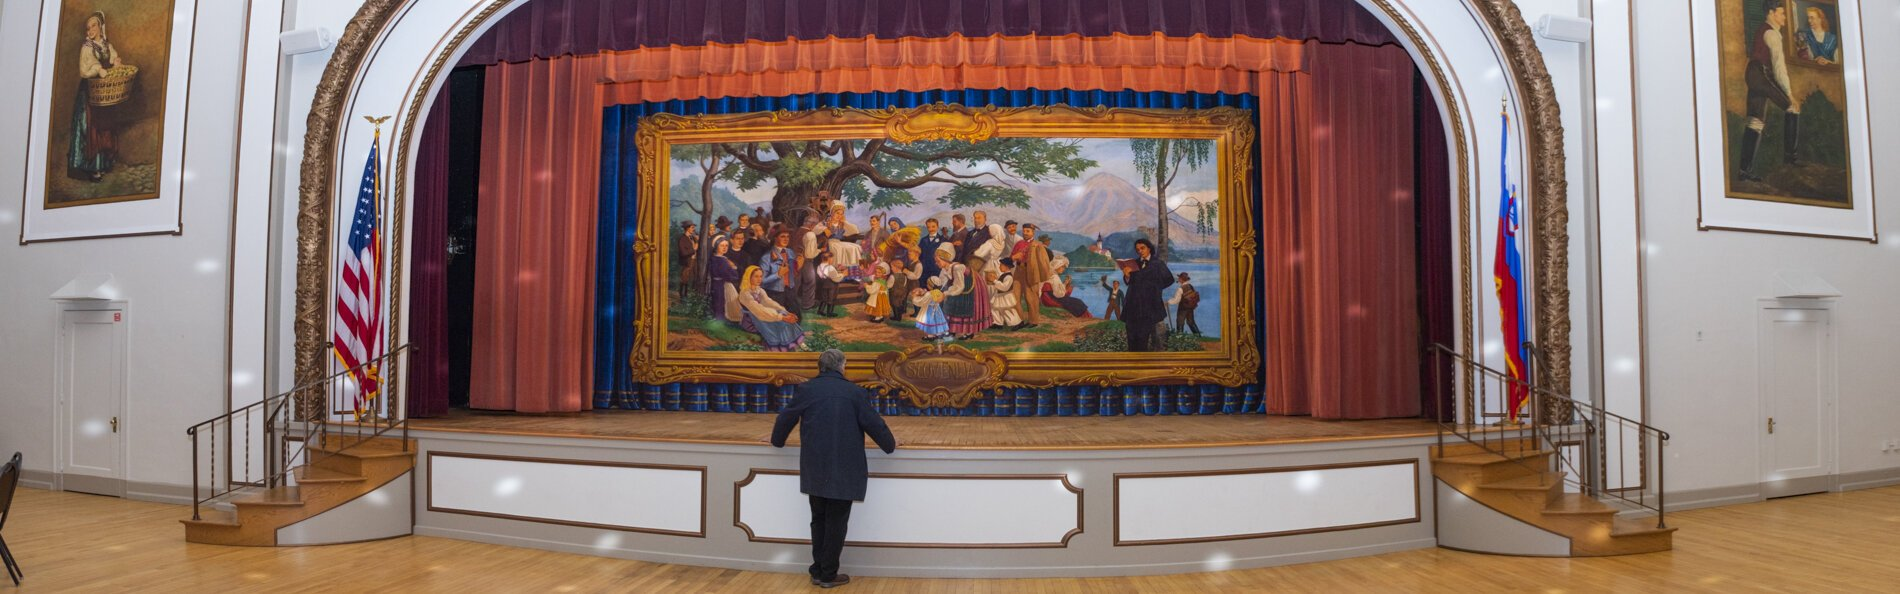 The Gaspari Curtain - entitled 'Mother Slovenia' at the Slovenian National Home in the St. Clair – Superior neighborhood